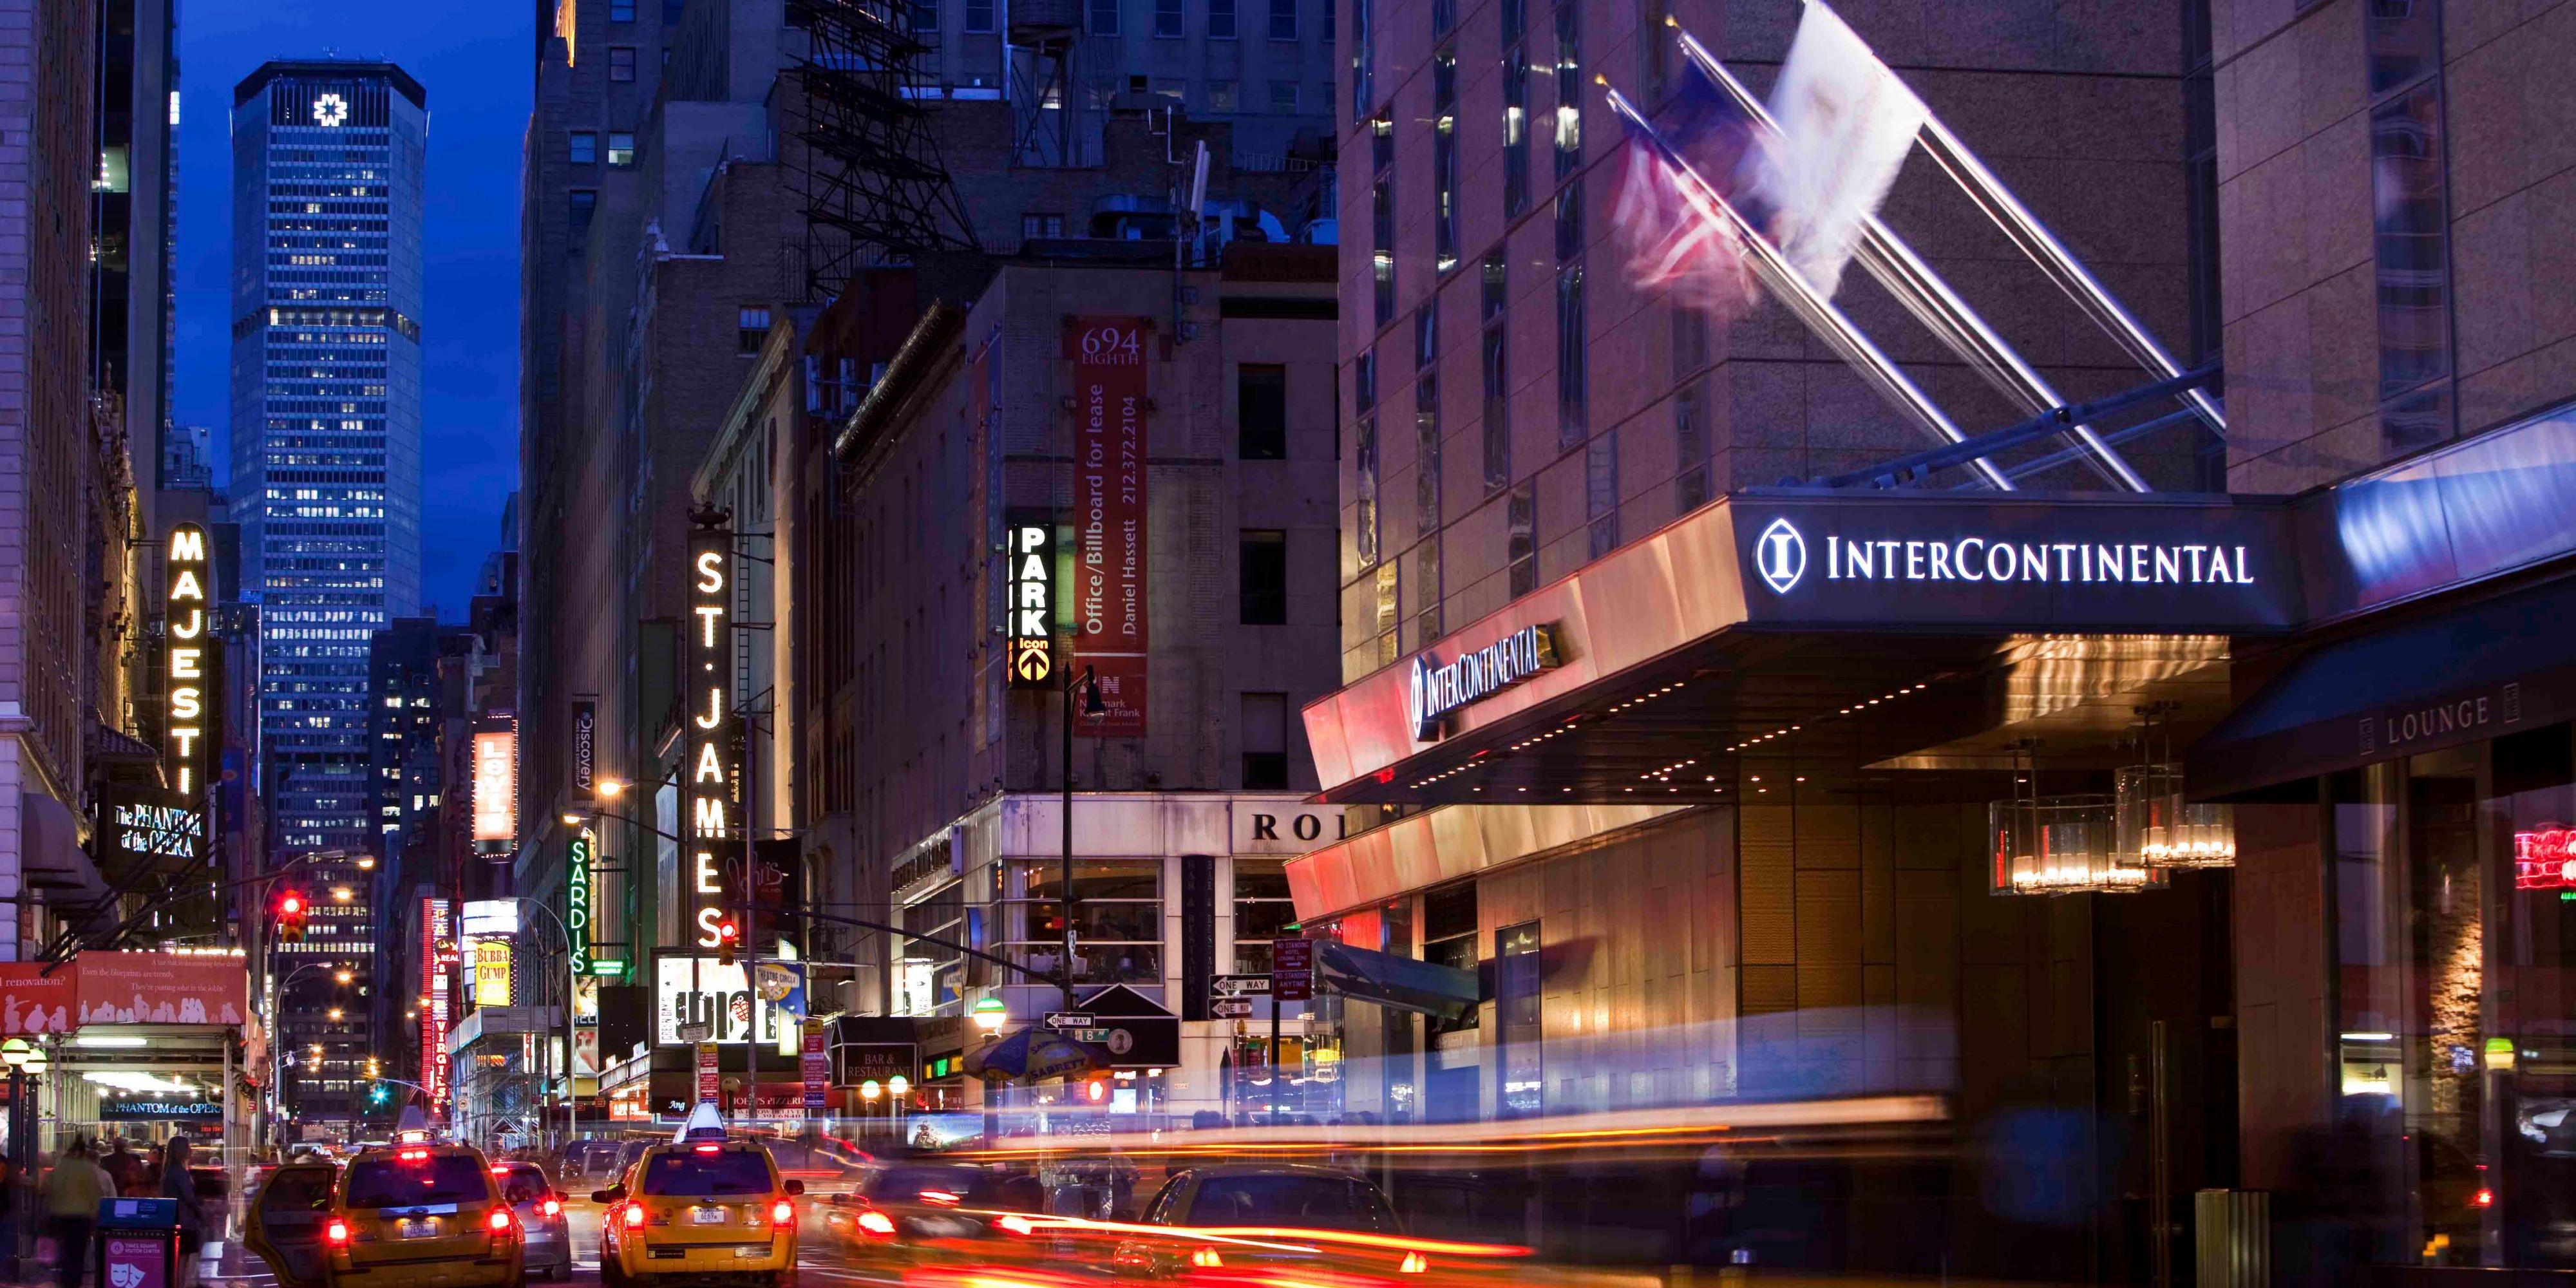 44th street and times square adult